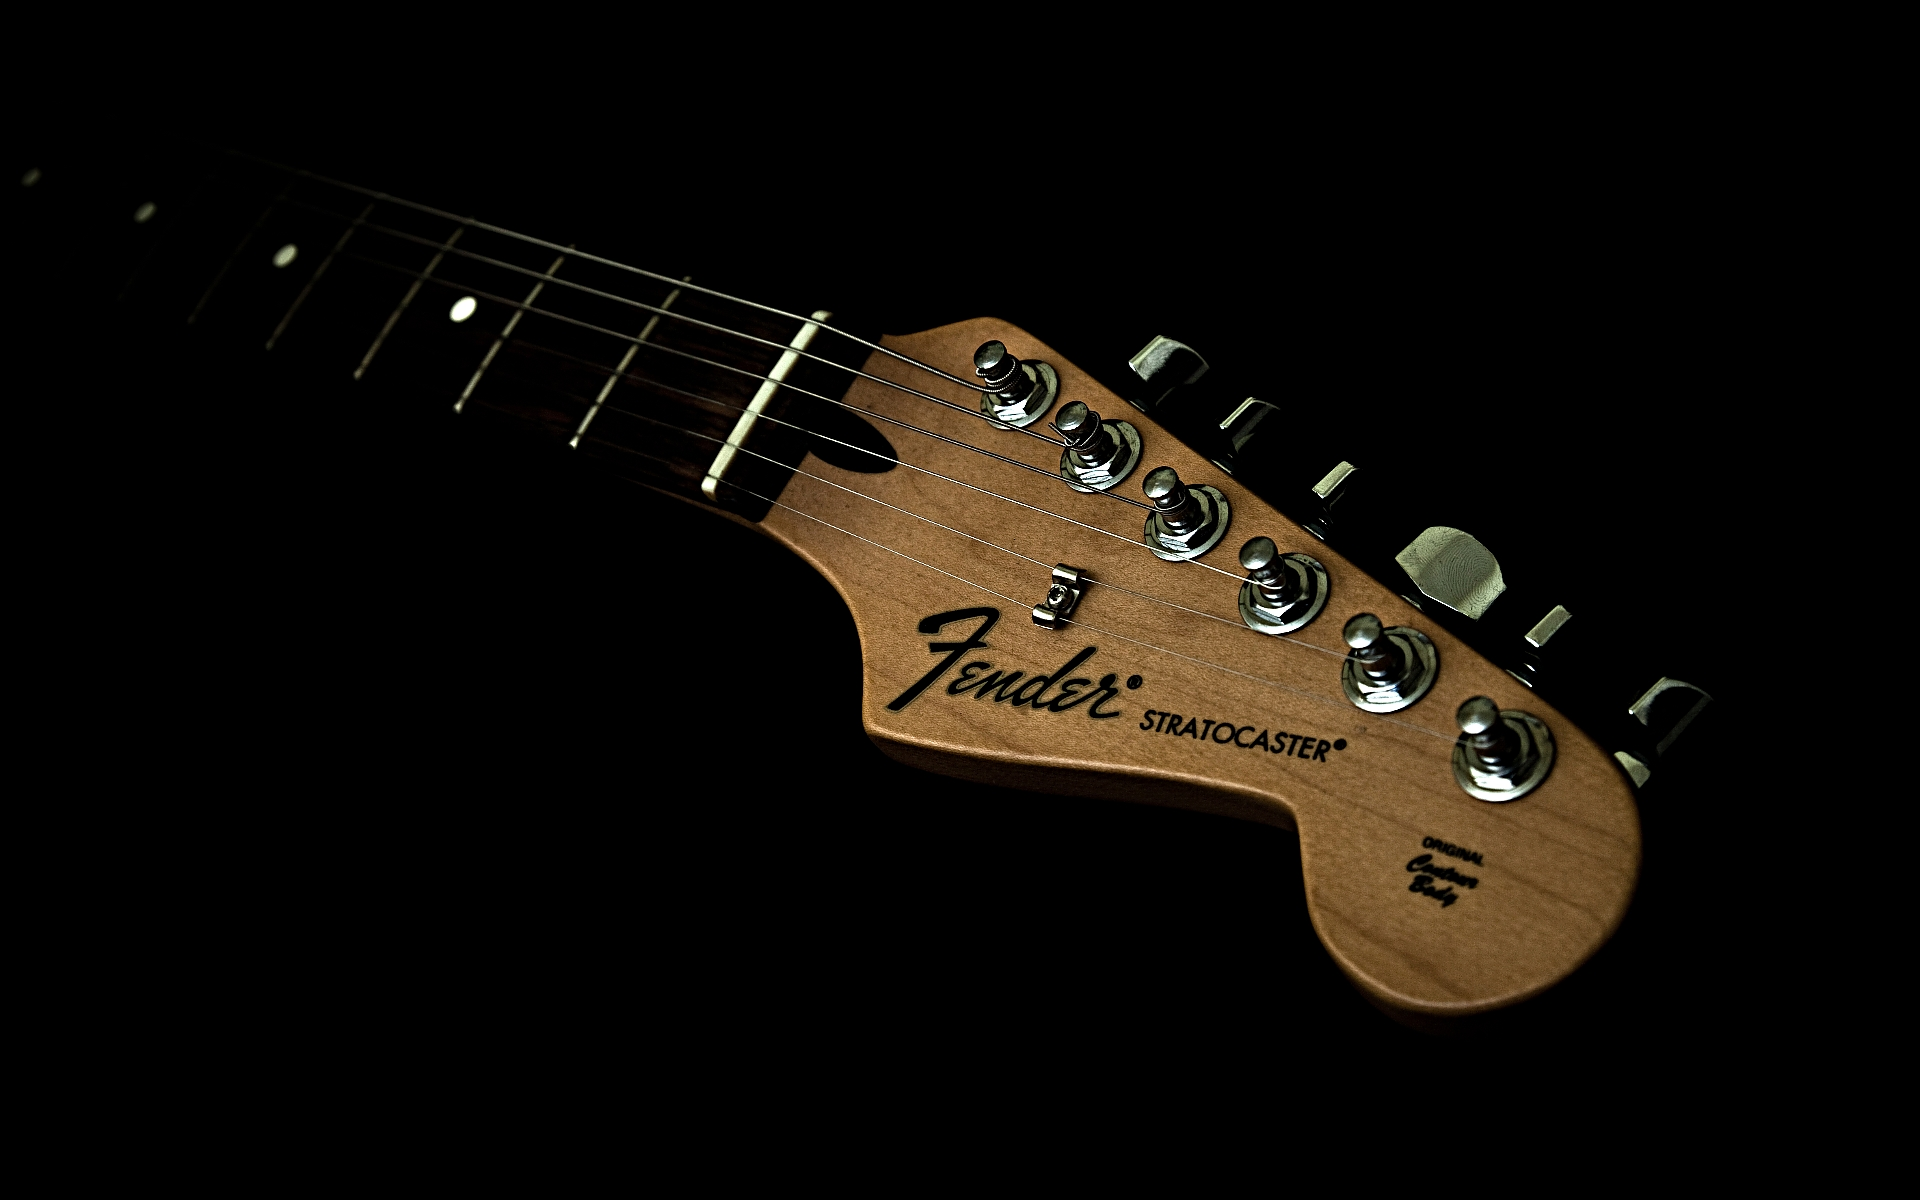 Fender Background Winter Stratocaster wallpapers HD   152879 1920x1200